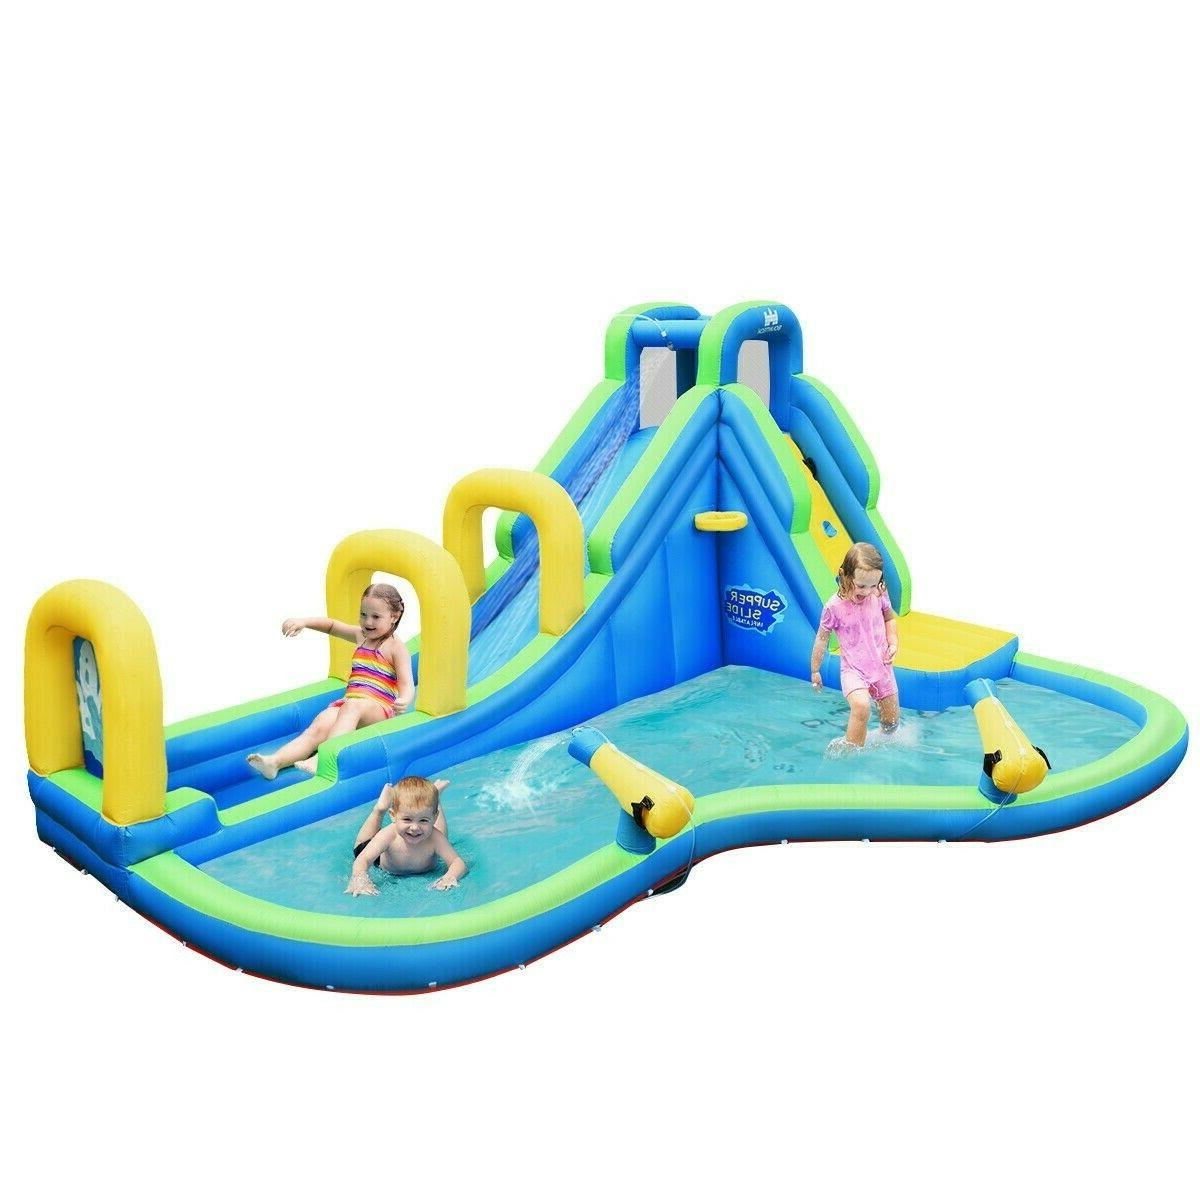 Inflatable Bounce House Jump Splash Adventure Water Slide Bo